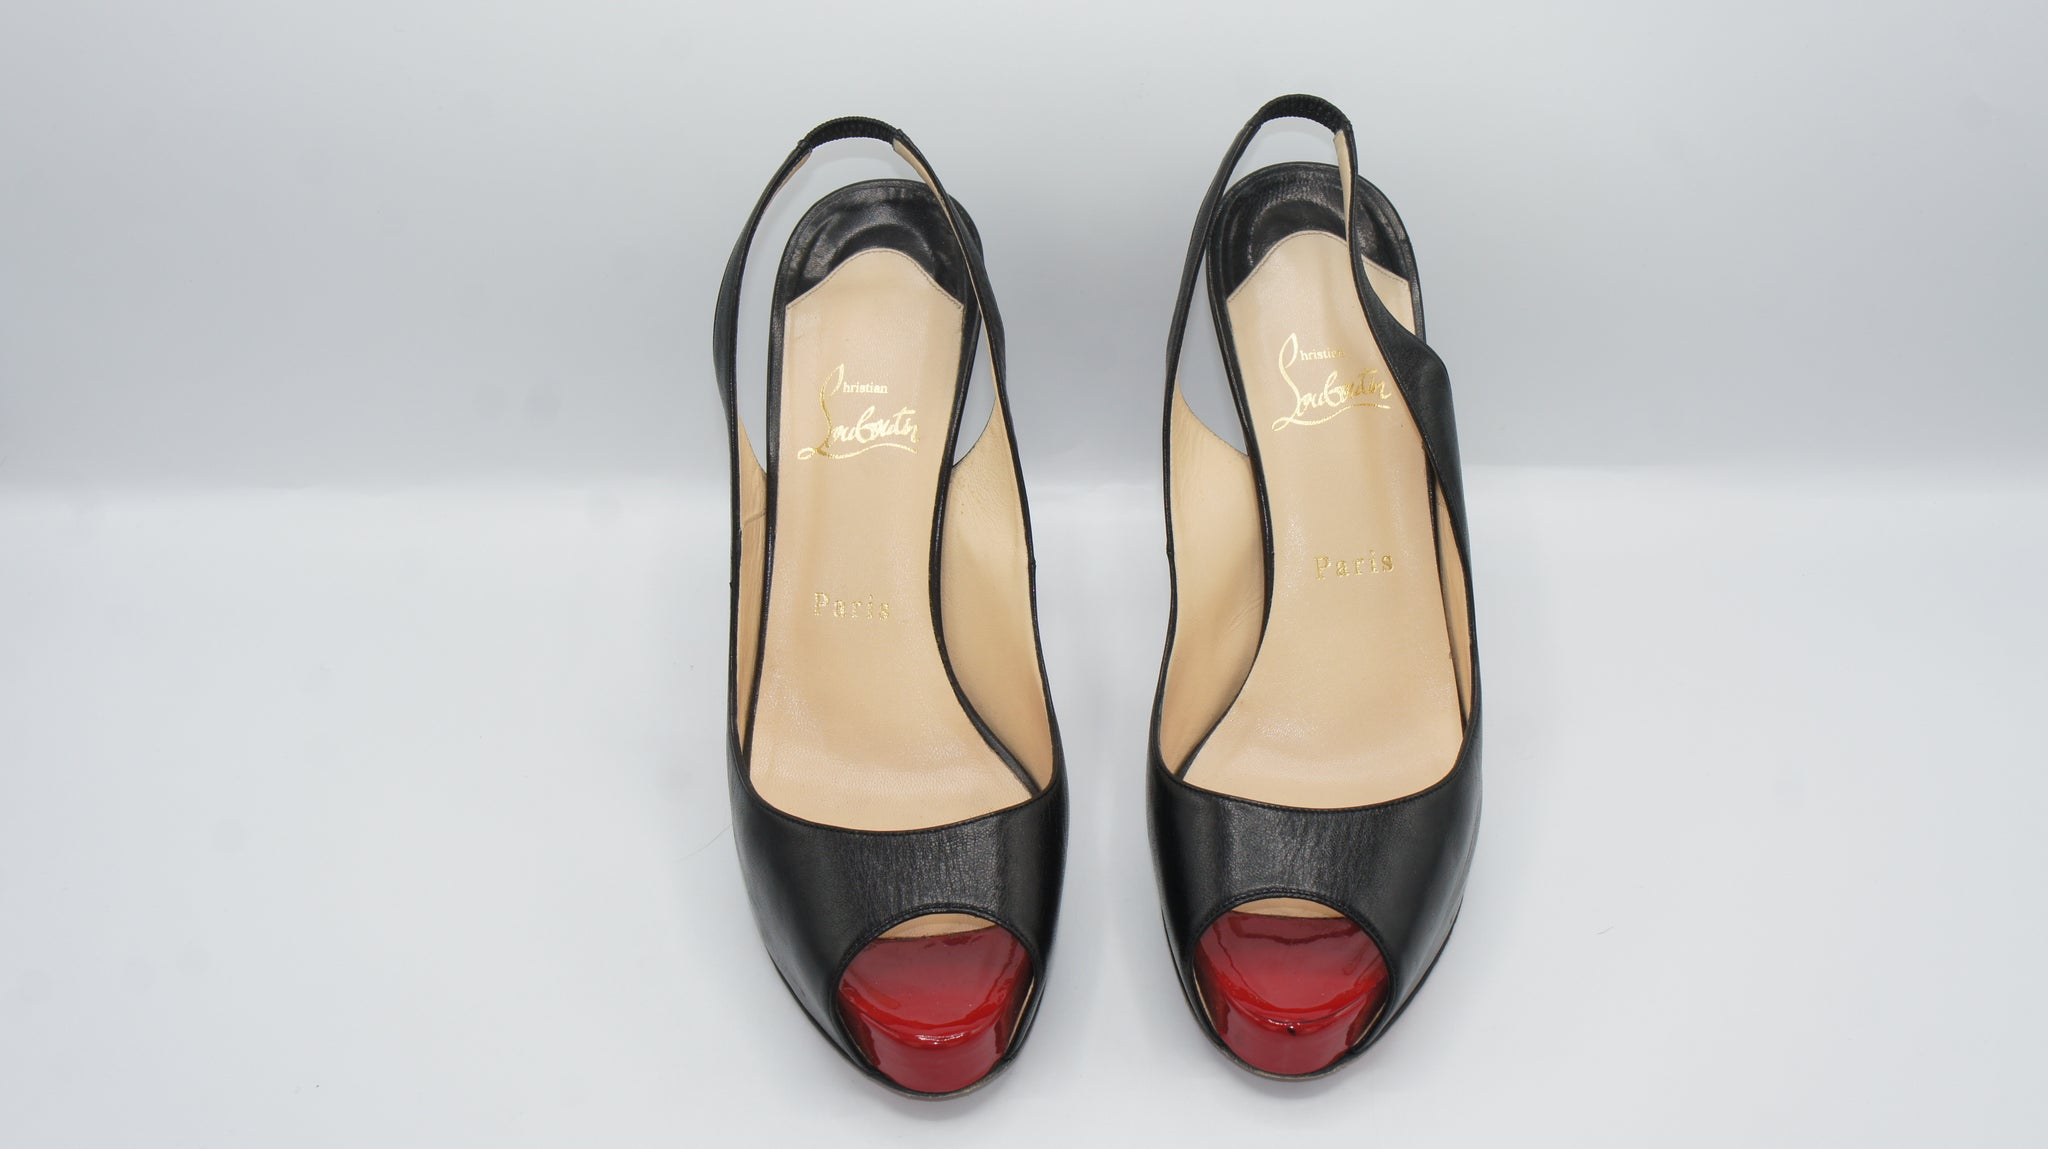 Christian Louboutin Very Privé, 39 - Iconics Preloved Luxury